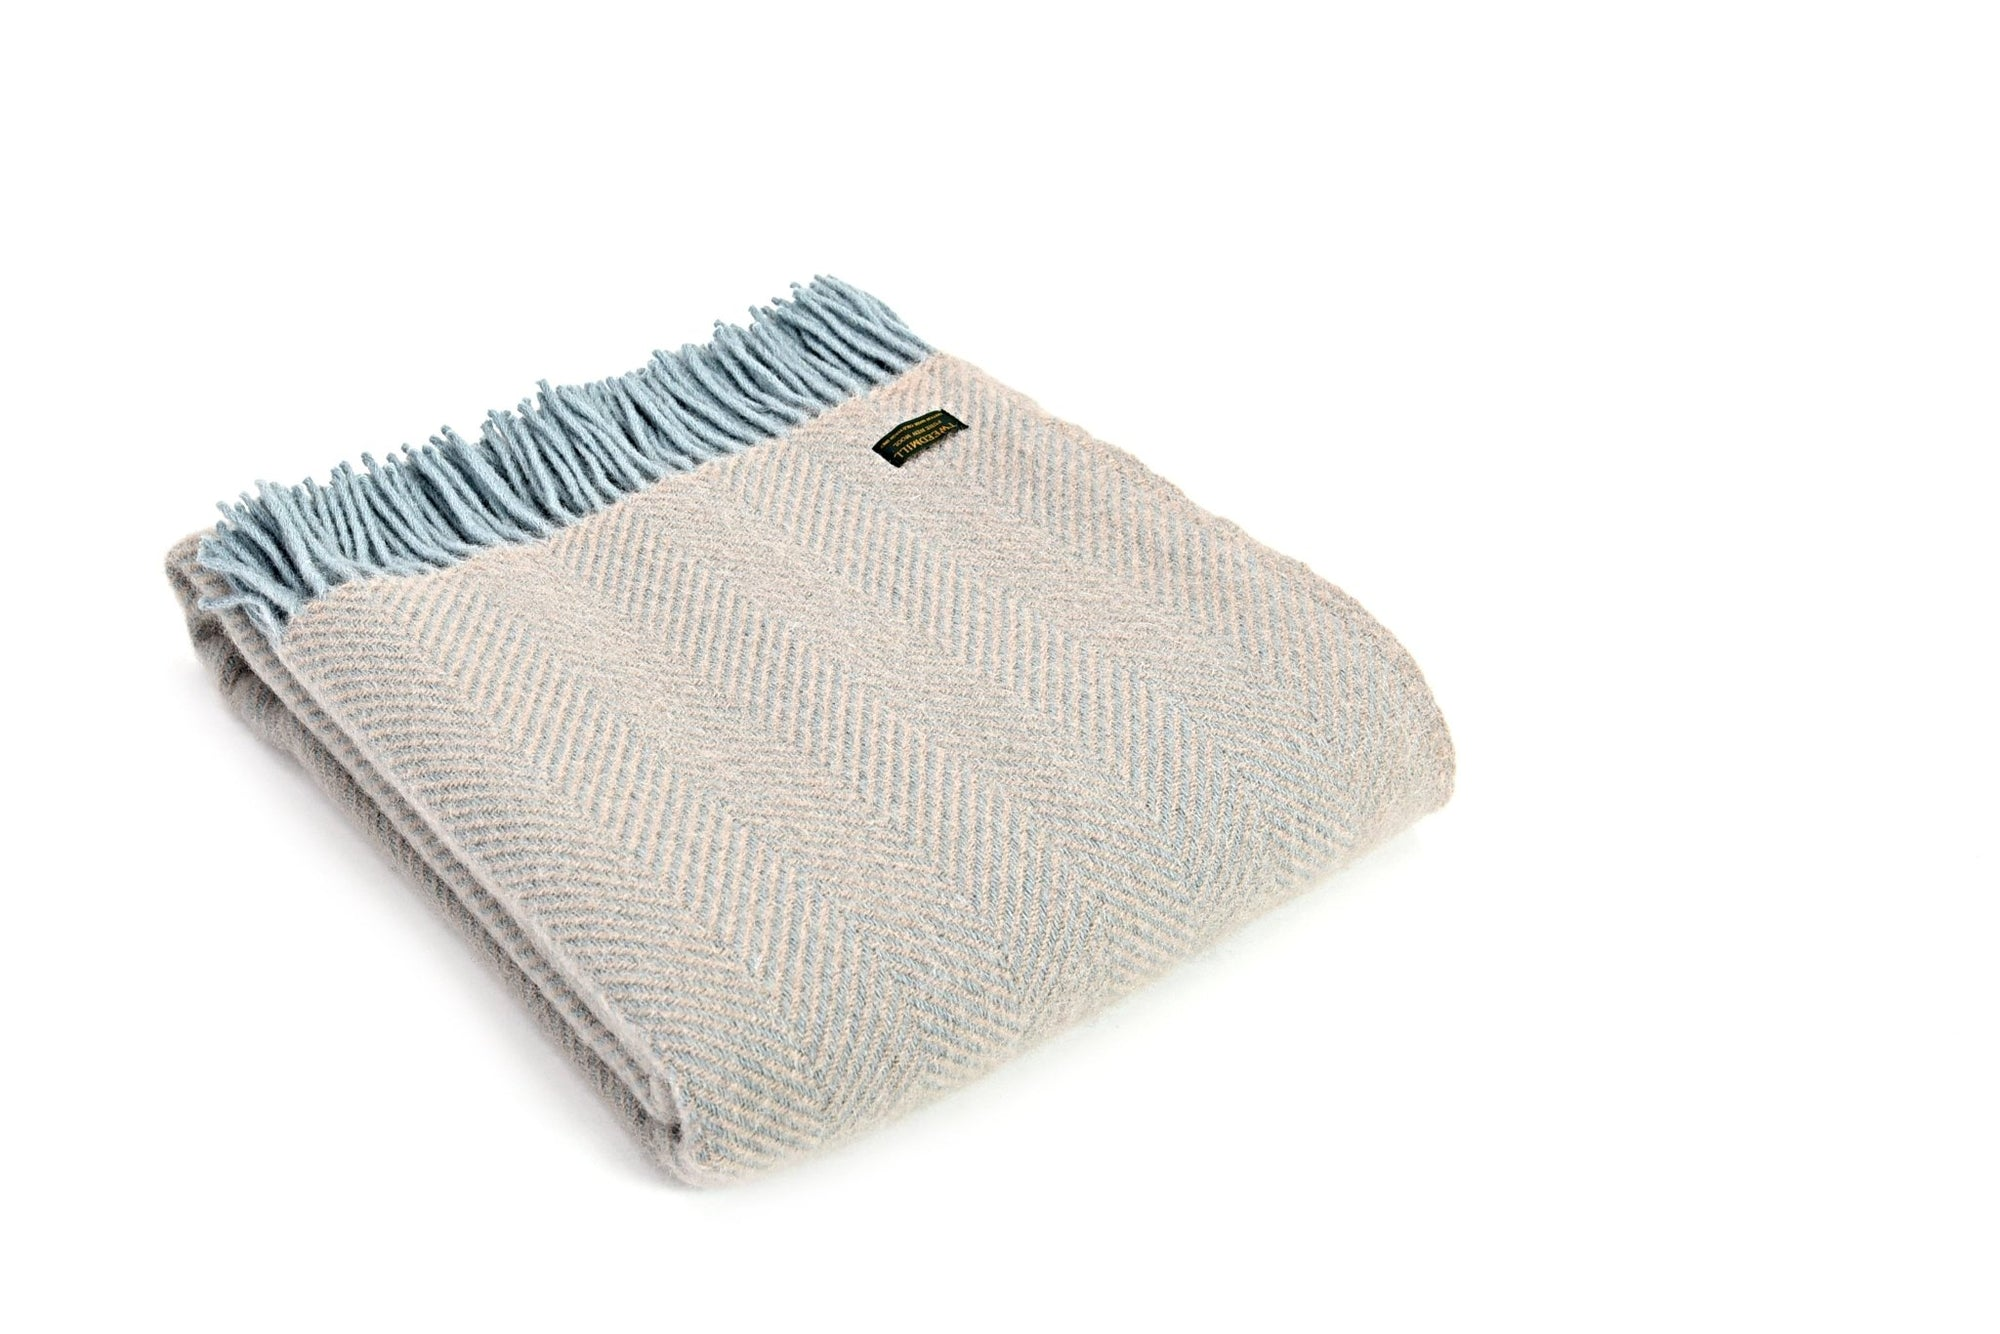 Tweedmill Herringbone Fawn & Duck Egg pure wool throw - Urban Wool